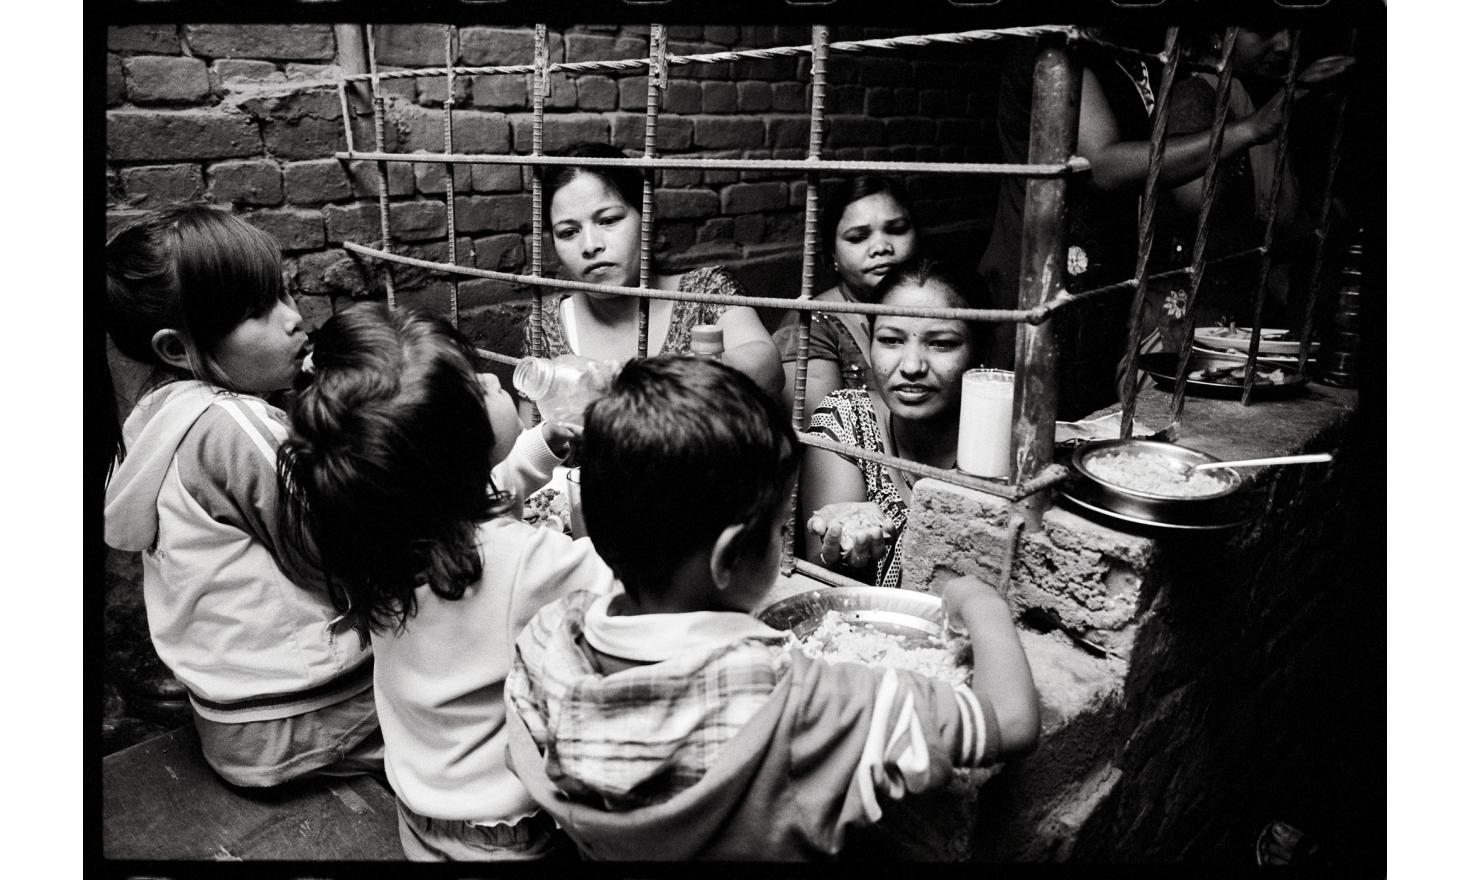 Kathmandu, Nepal. In Nepal, when a woman is sentenced to jail, she goes there with her children. Based in Kathmandu, an NGO takes care of them now. With the permission of the mothers, the children leave the jail to stay in shelters.